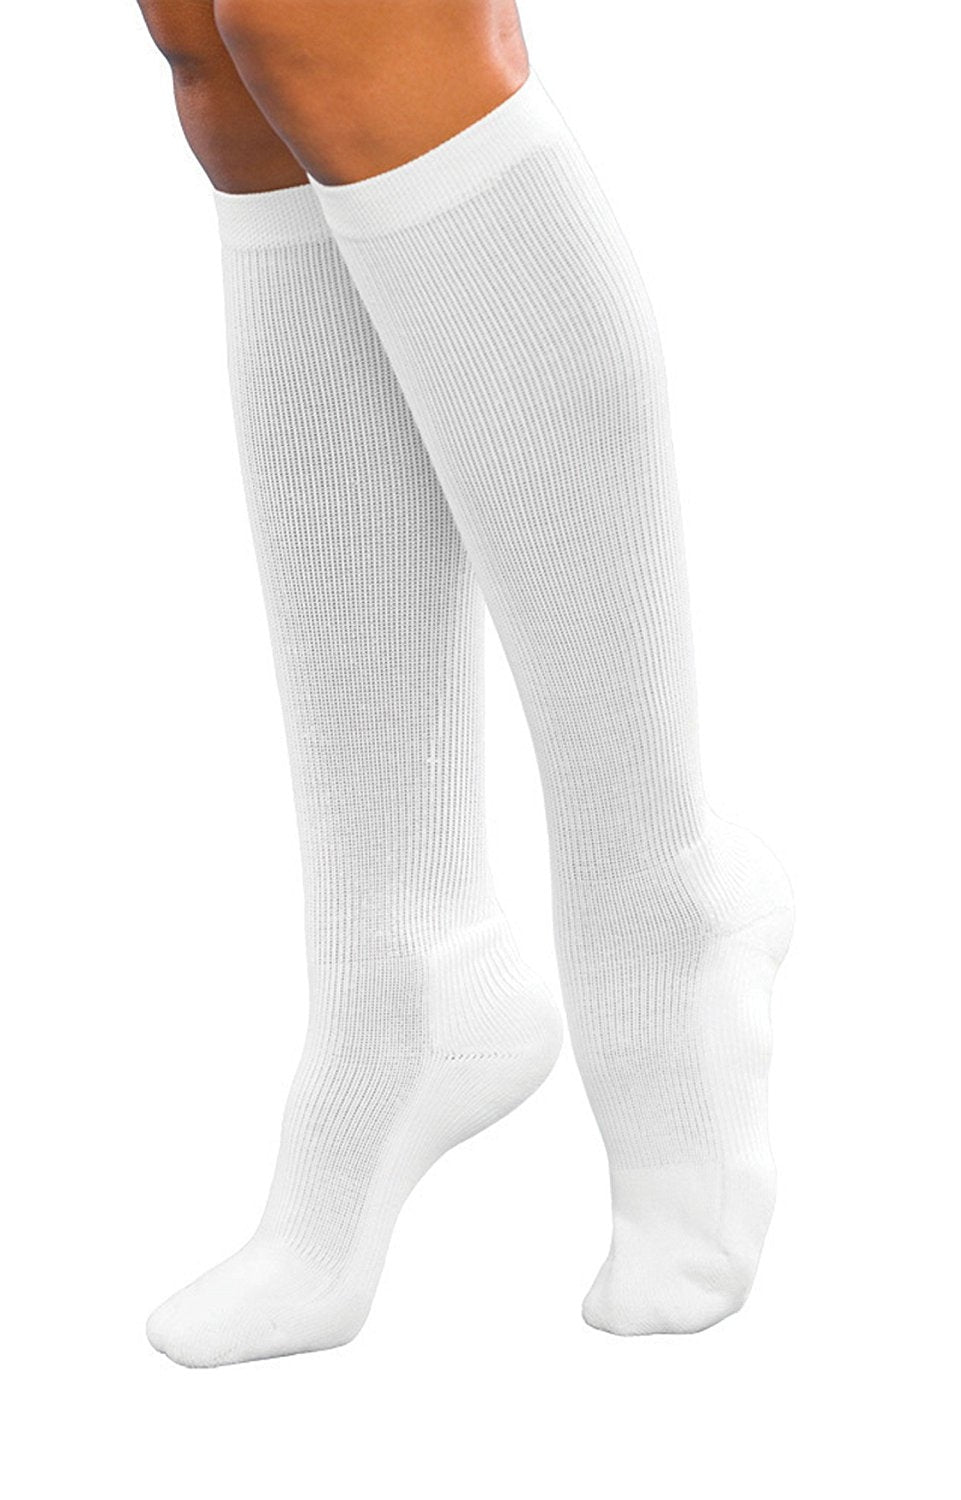 Max Compression 35-40 mmHg Medical Socks for Women, White, Medium, 4.2 Ounce (Pack of 2)